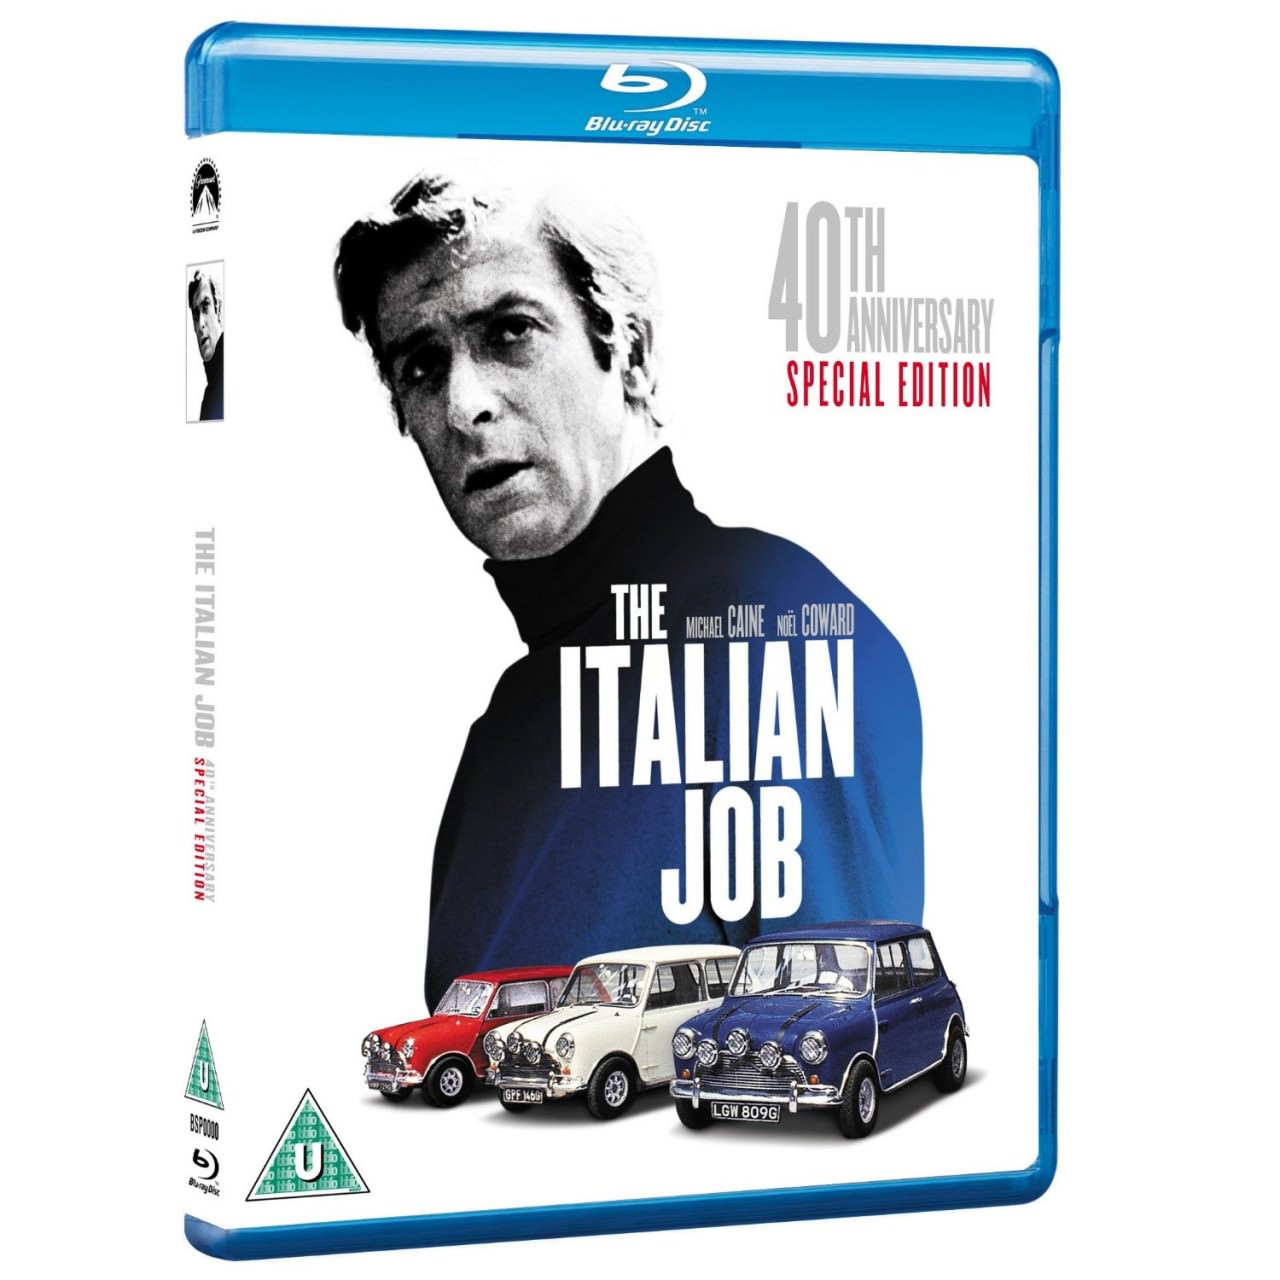 The Italian Job [Blue-ray], Original 1969 Version